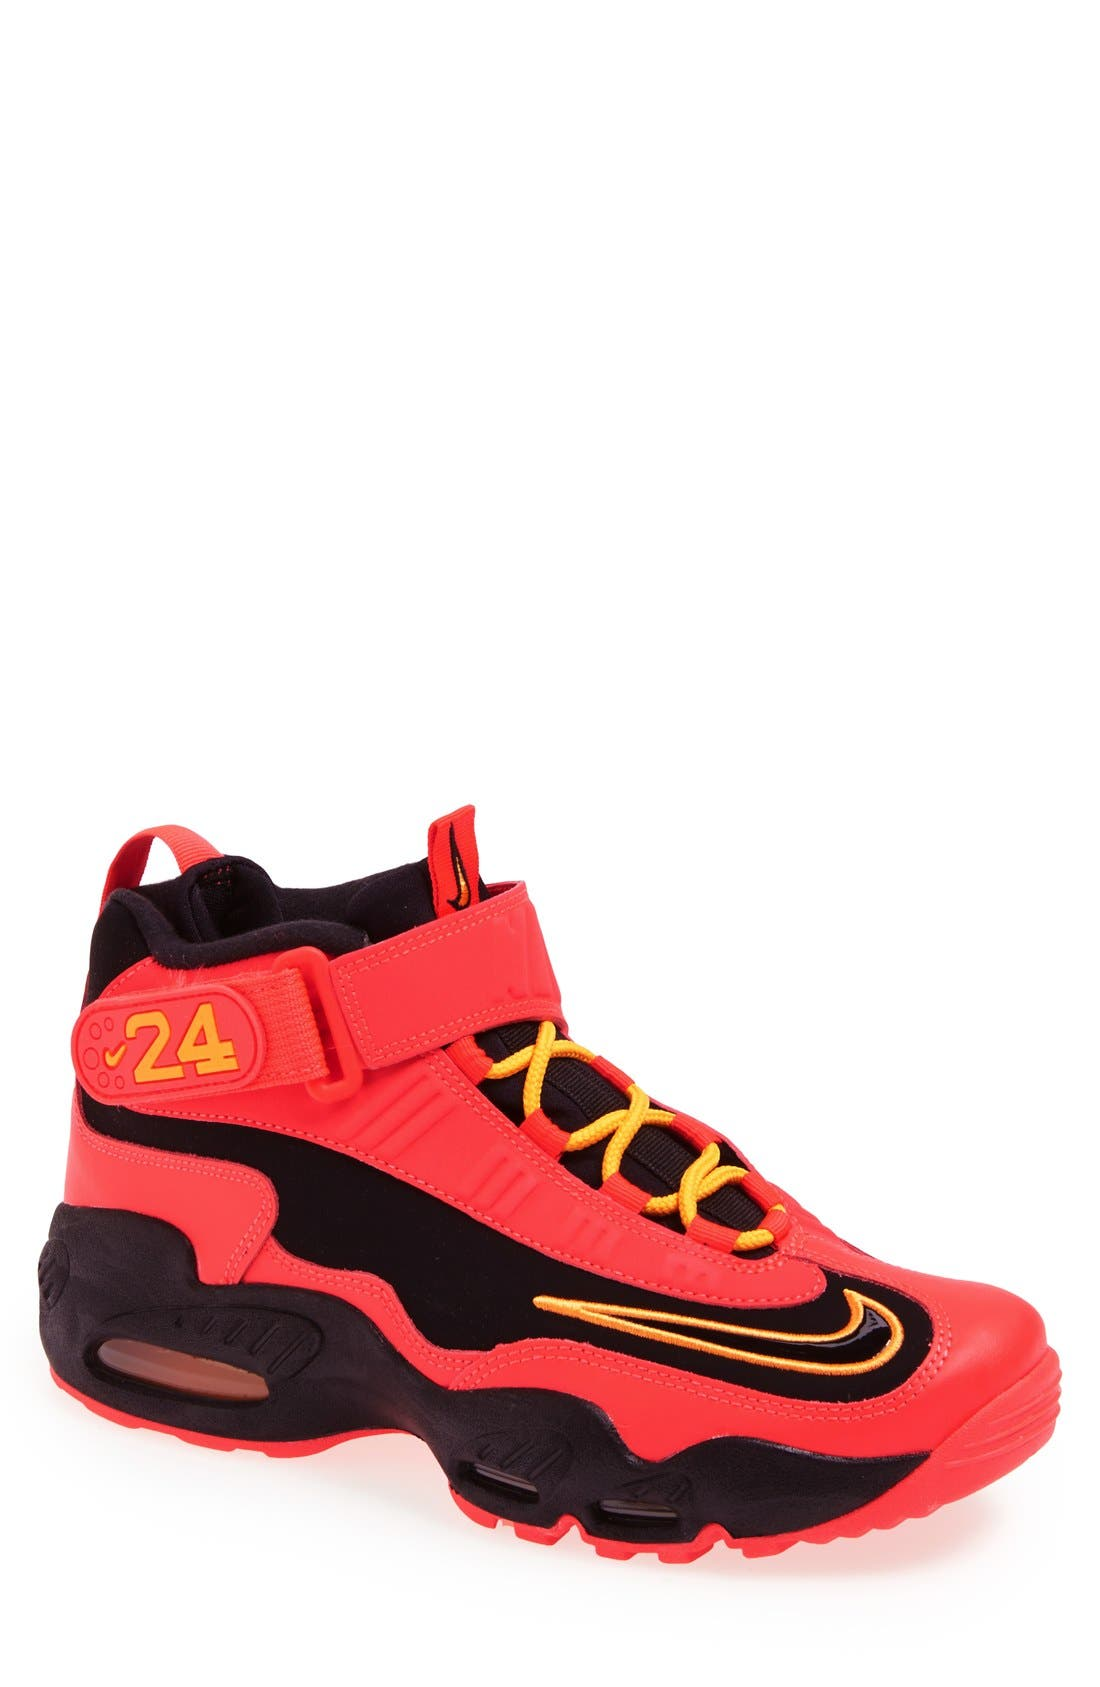 Main Image - Nike 'Air Griffey Max 1' Sneaker (Men)